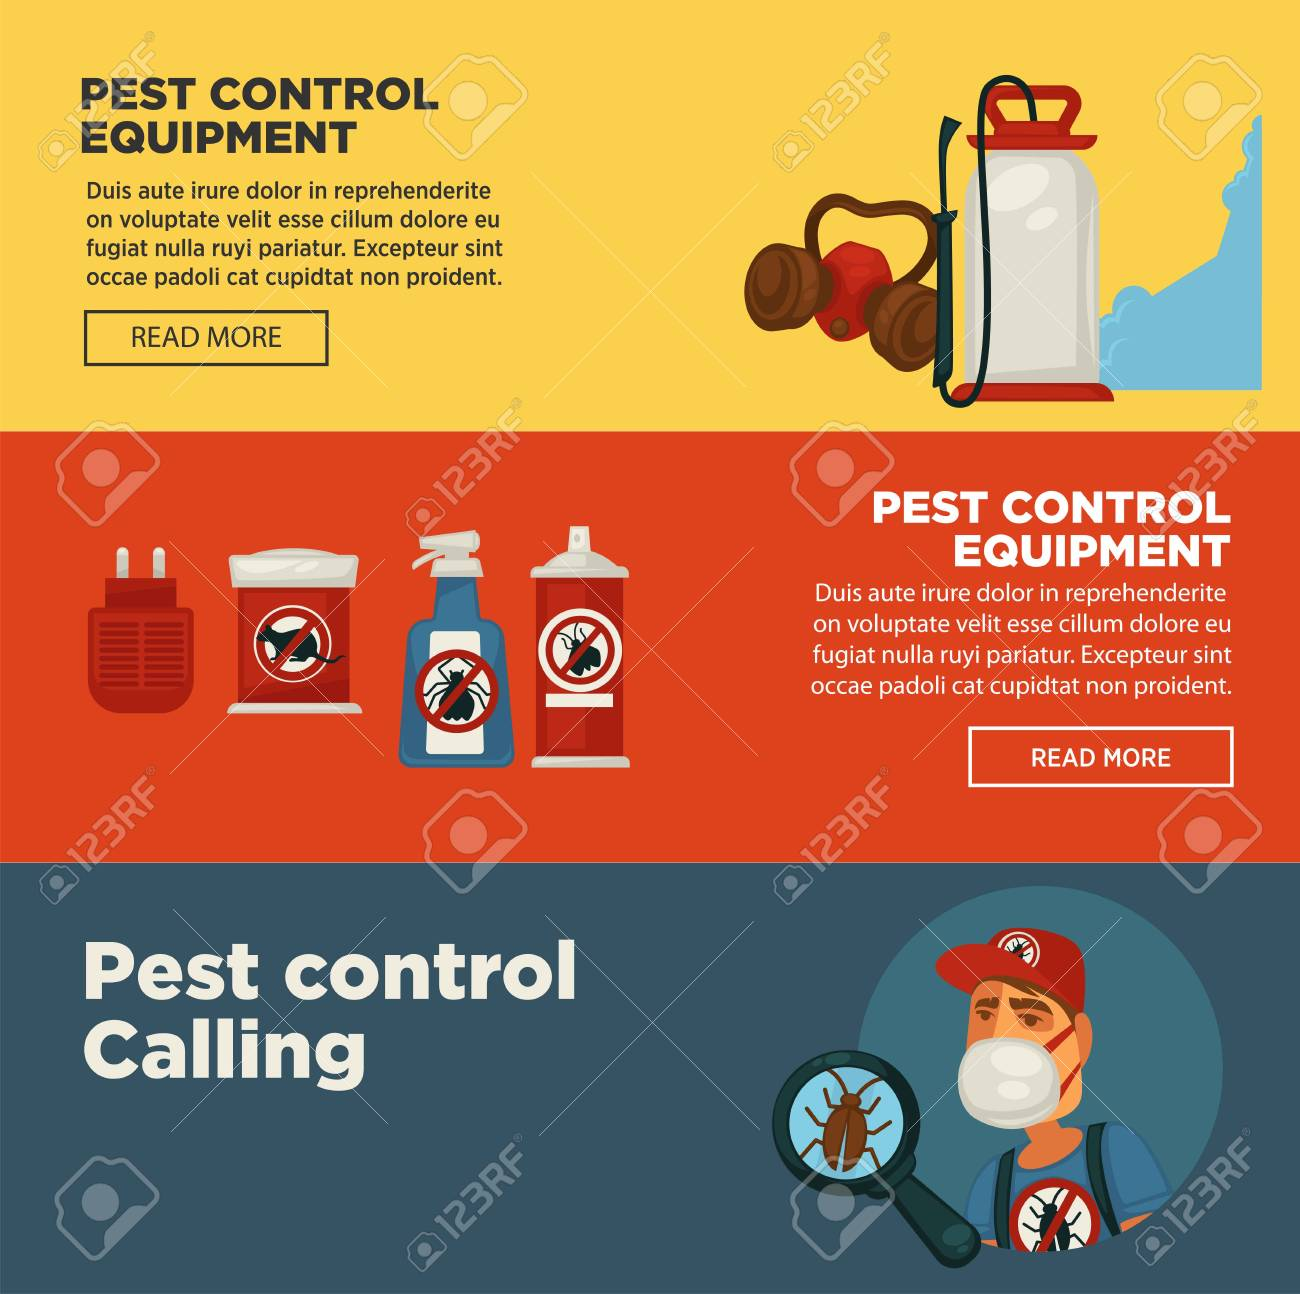 extermination pest control service banners template design of sanitary domestic exterminate disinfection equipment stock vector